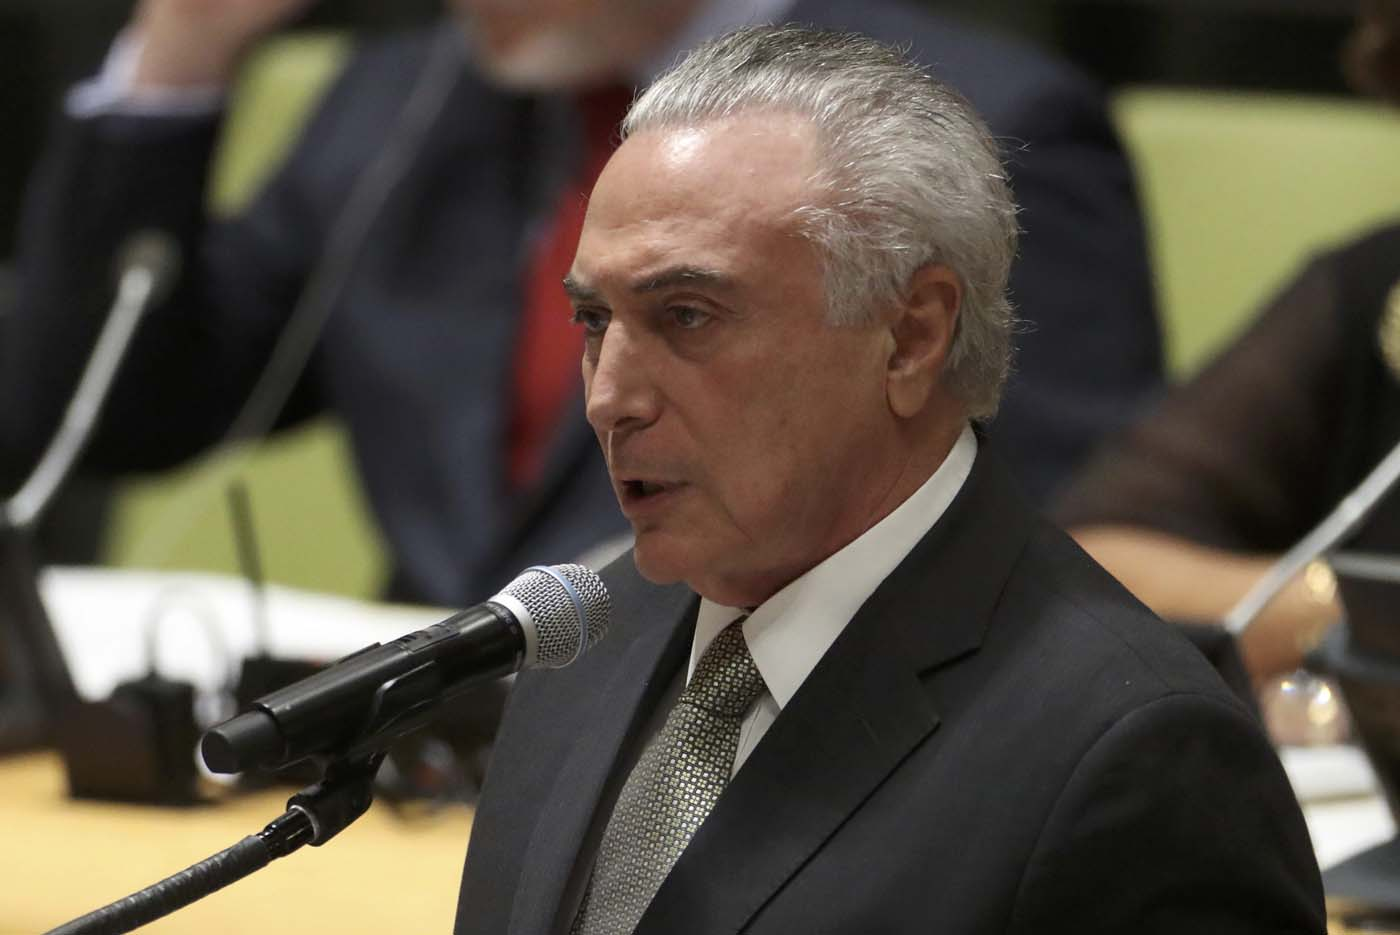 President Michel Temer of Brazil speaks during a high-level meeting on addressing large movements of refugees and migrants at the United Nations General Assembly in Manhattan, New York, U.S. September 19, 2016. REUTERS/Carlo Allegri